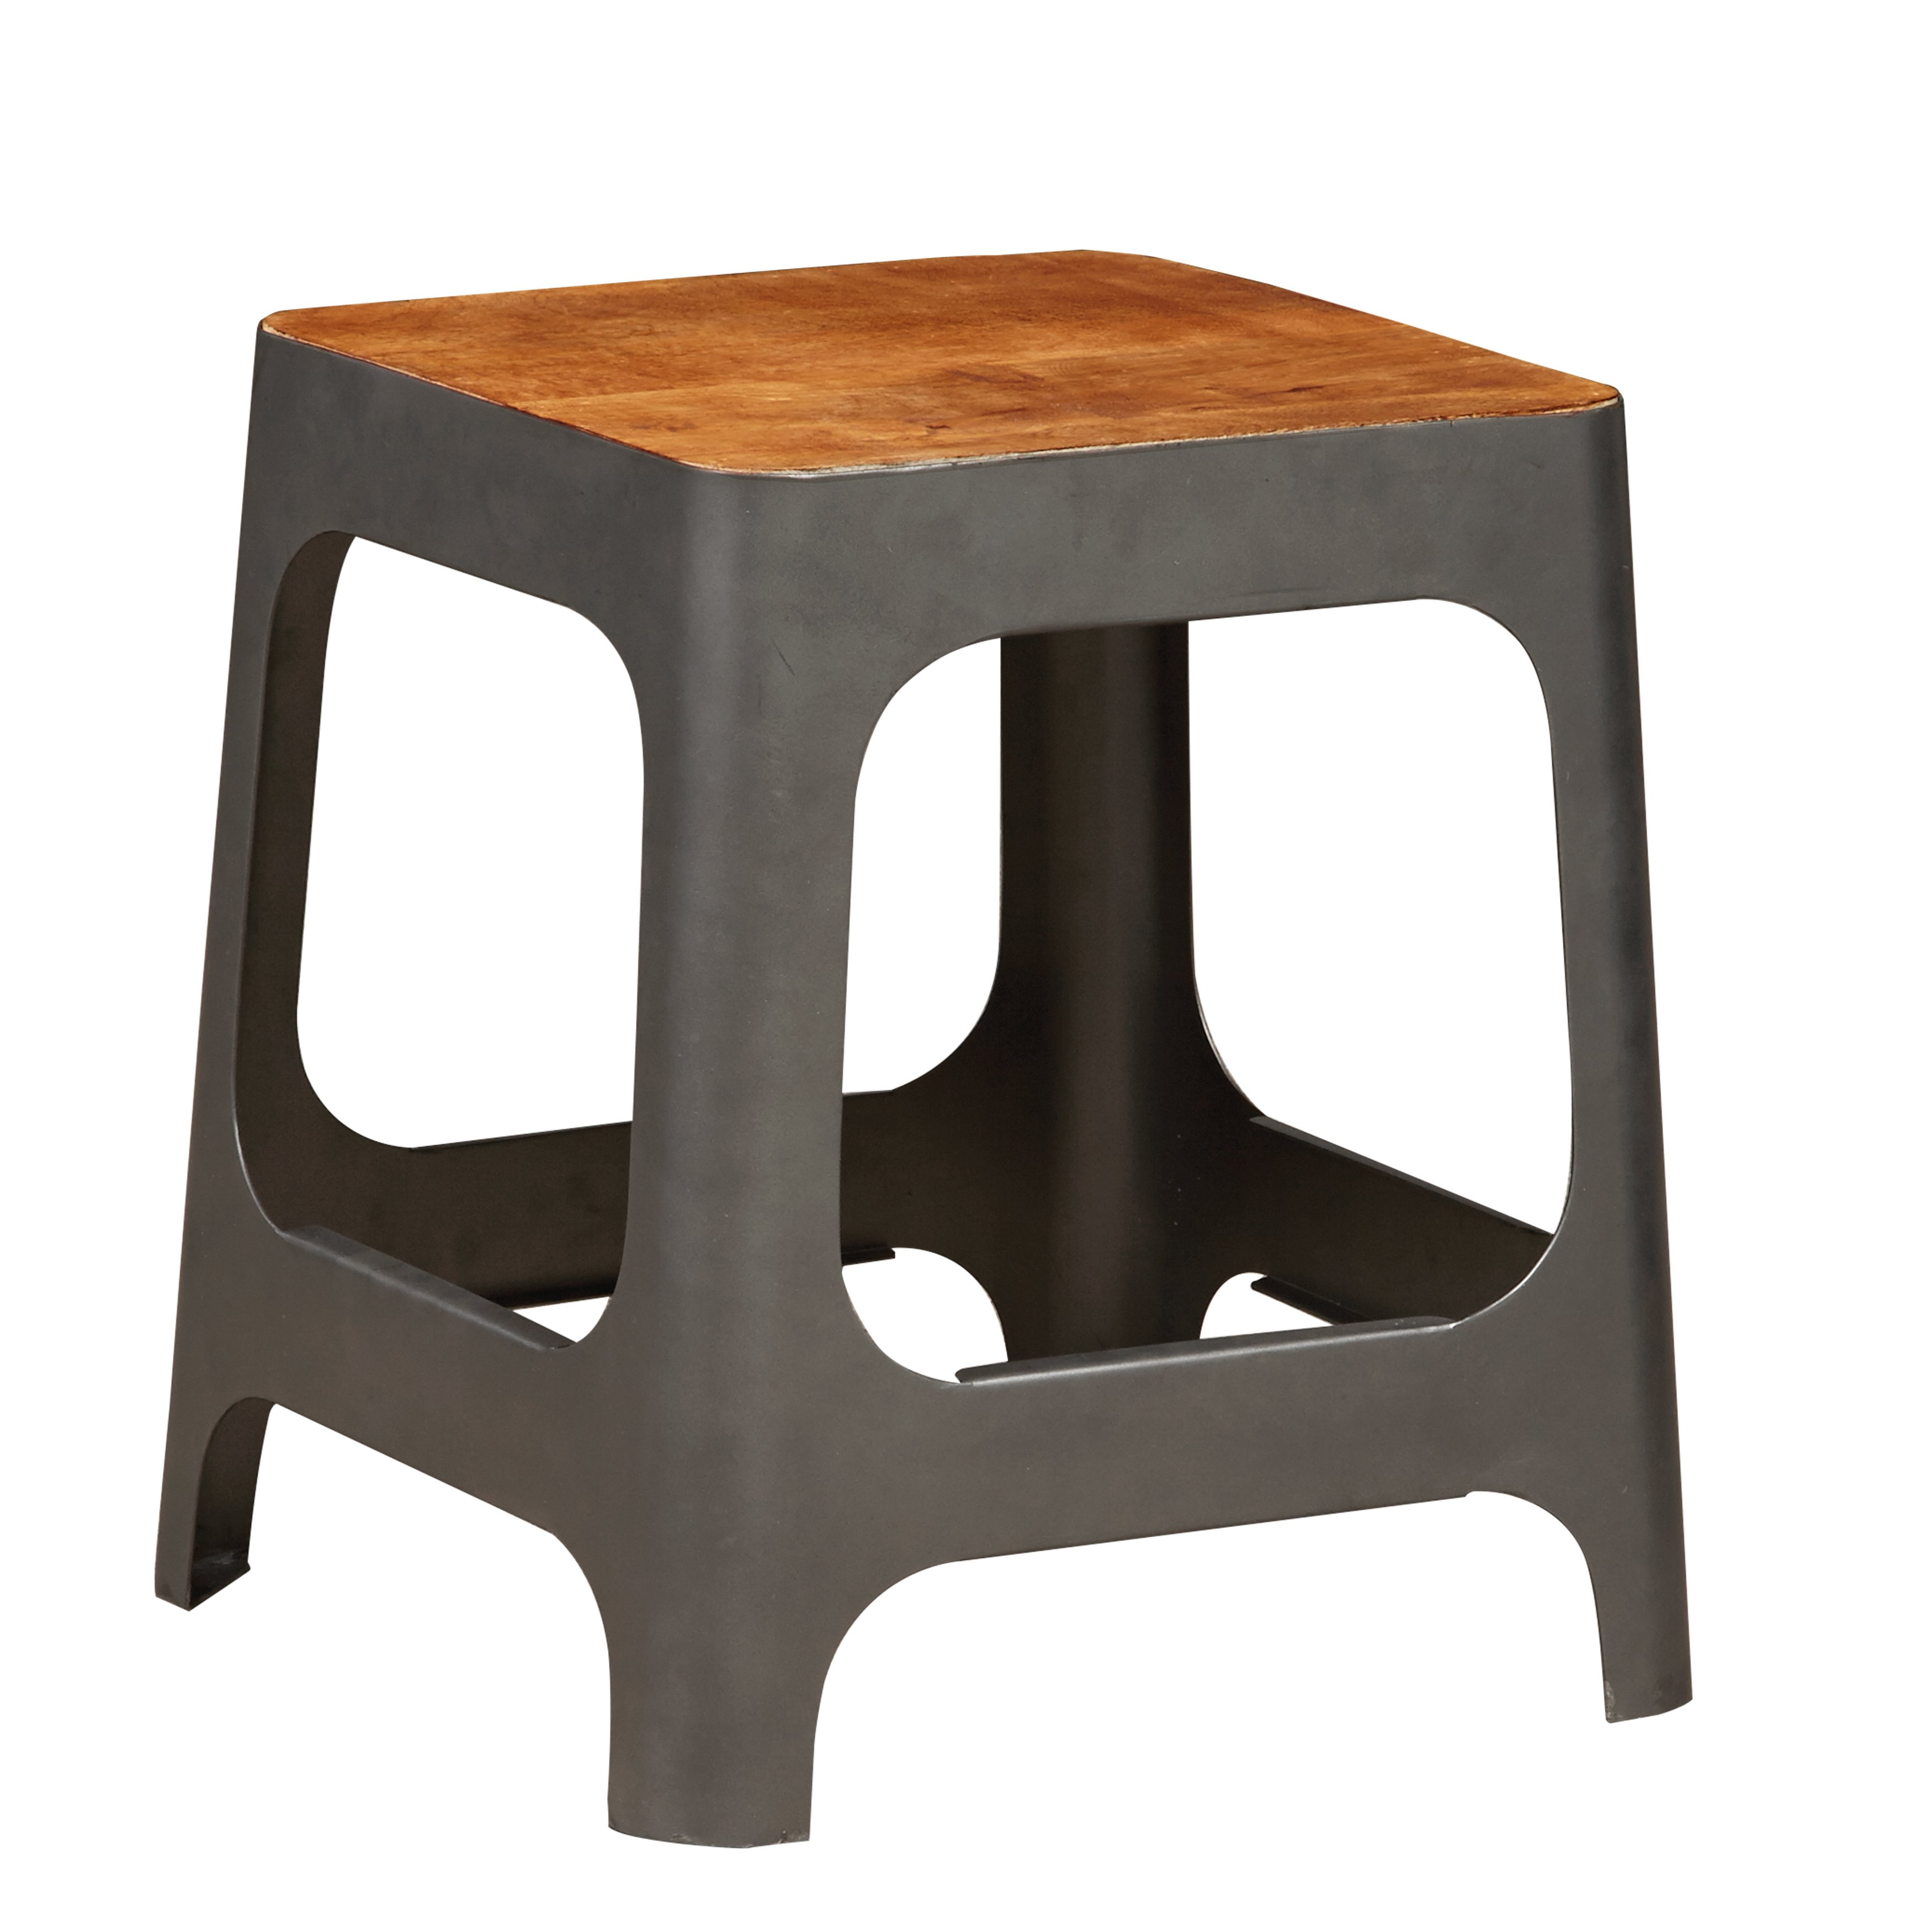 modern industrial chic iron accent table and stool free shipping today basket end triangle ikea chair dining turquoise furniture wrought tables with glass tops rustic white